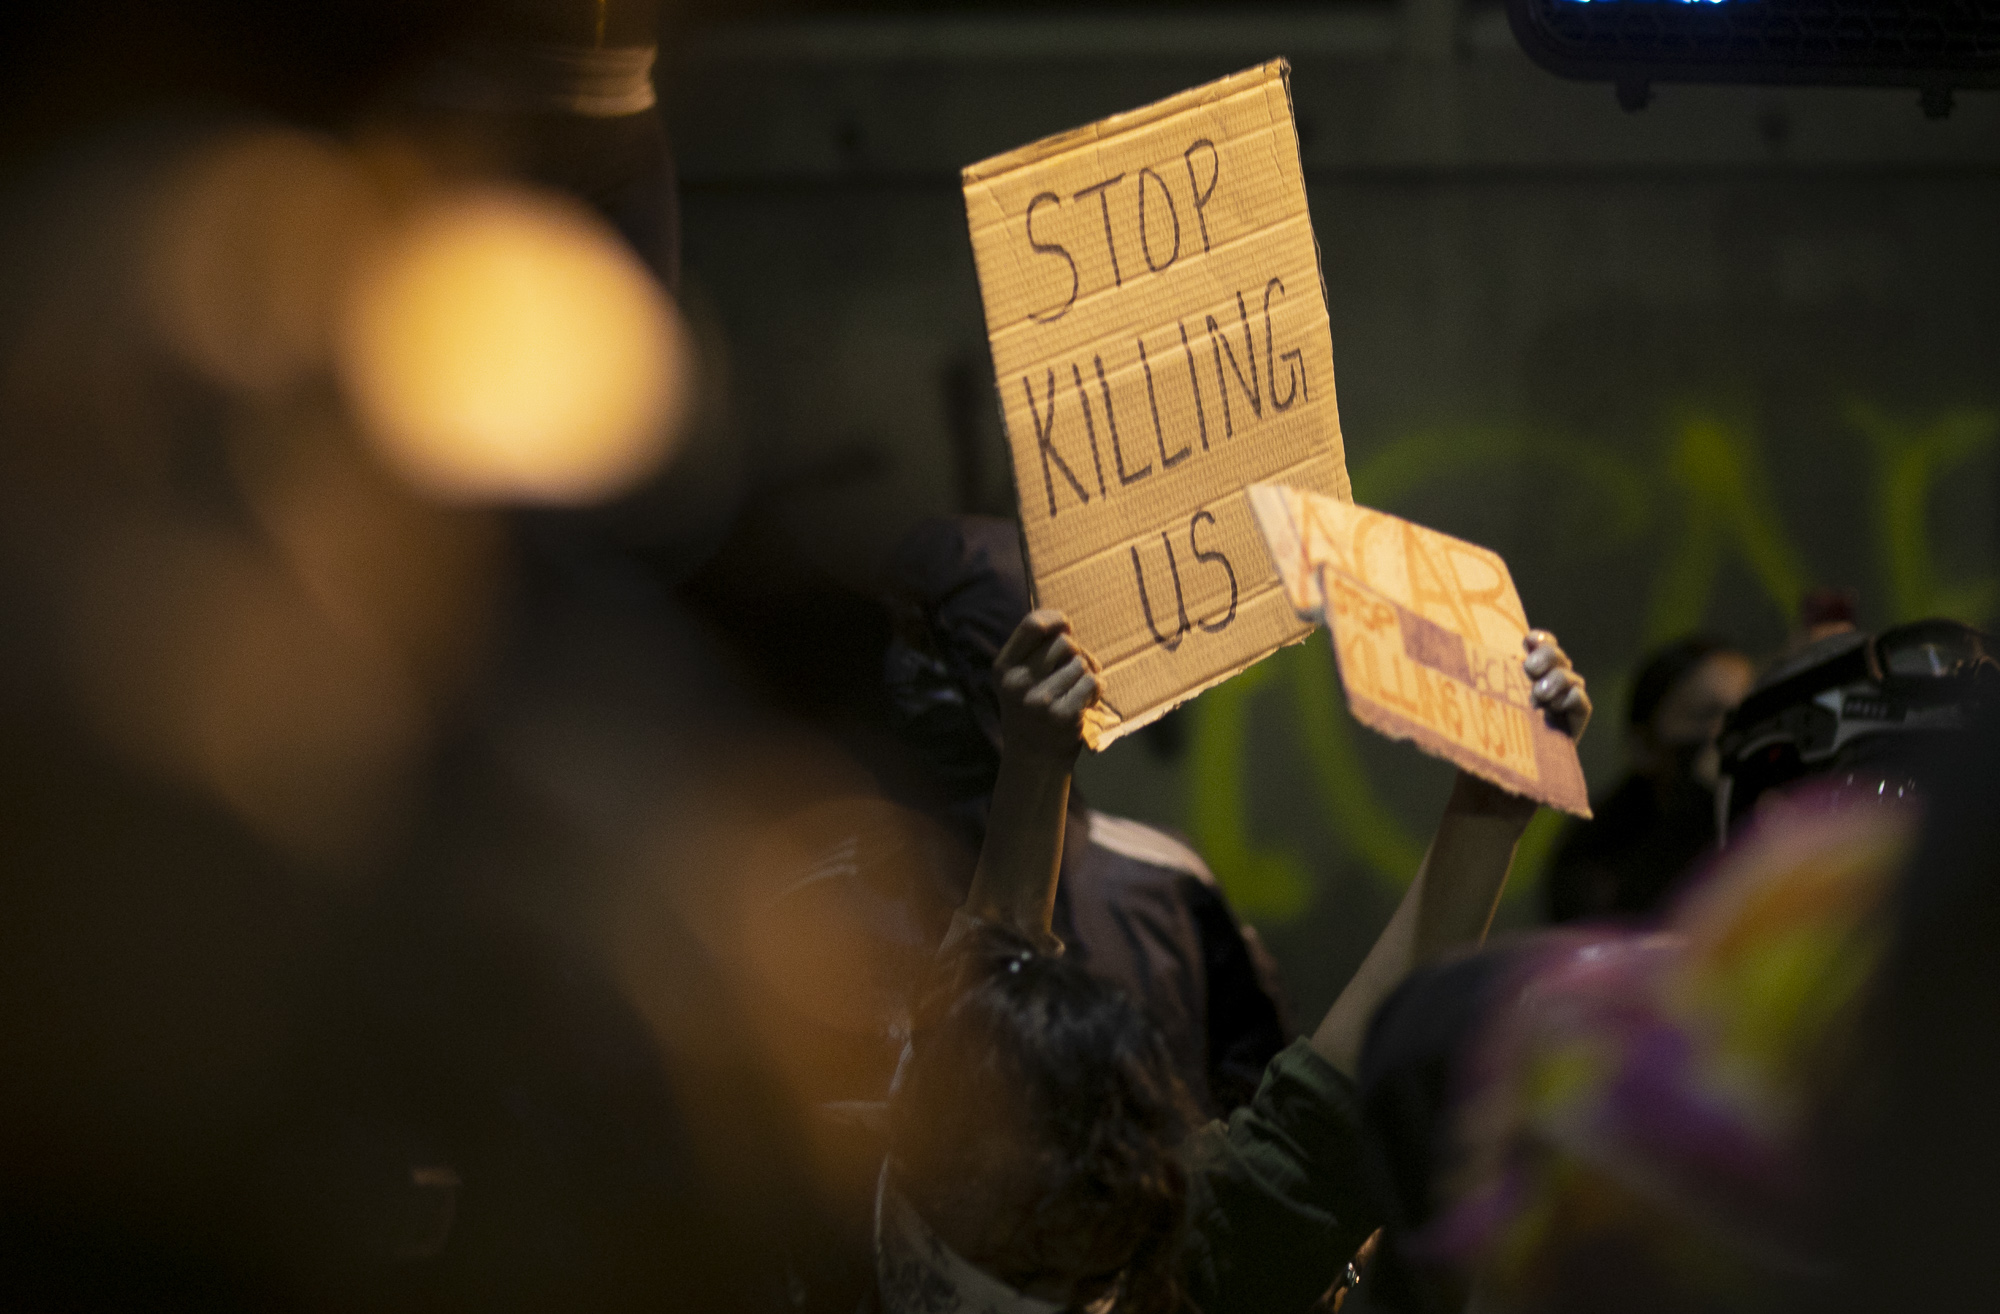 A protester holds up a sign that says 'stop killing us' during a demonstration May 29, 2020 Downtown Oakland. Thousands took to the streets Friday night in solidarity with protesters in Minneapolis against the killing of George Floyd by Minneapolis police earlier this week. Photo by Anne Wernikoff for CalMatters